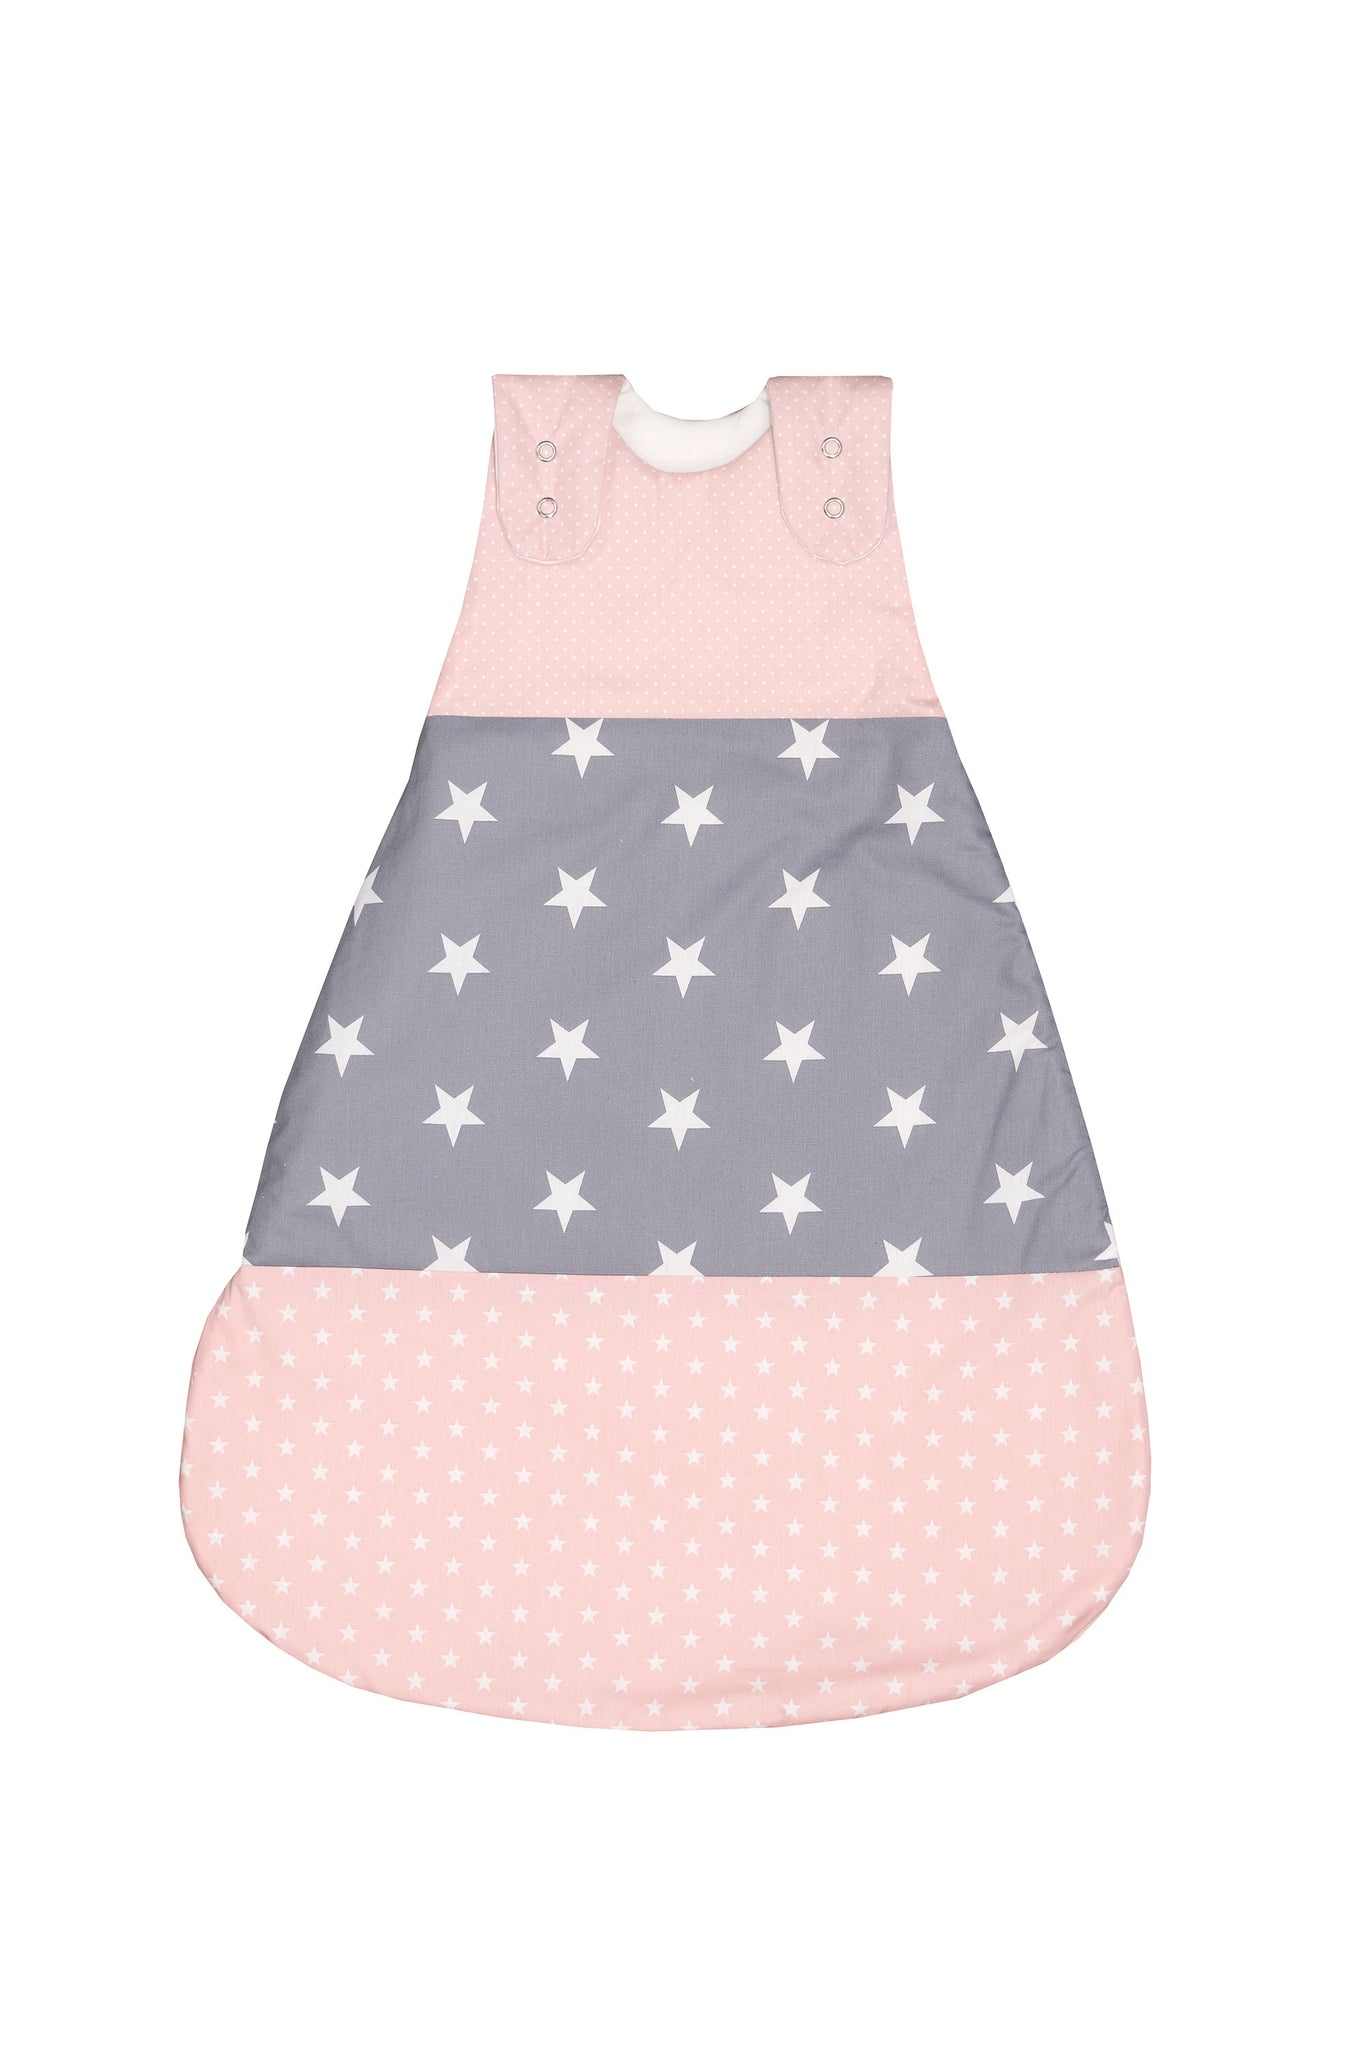 Sleep Sack – Baby Sleeping Bag, Wearable Blanket, Pink Grey with Stars, 6-12 Months